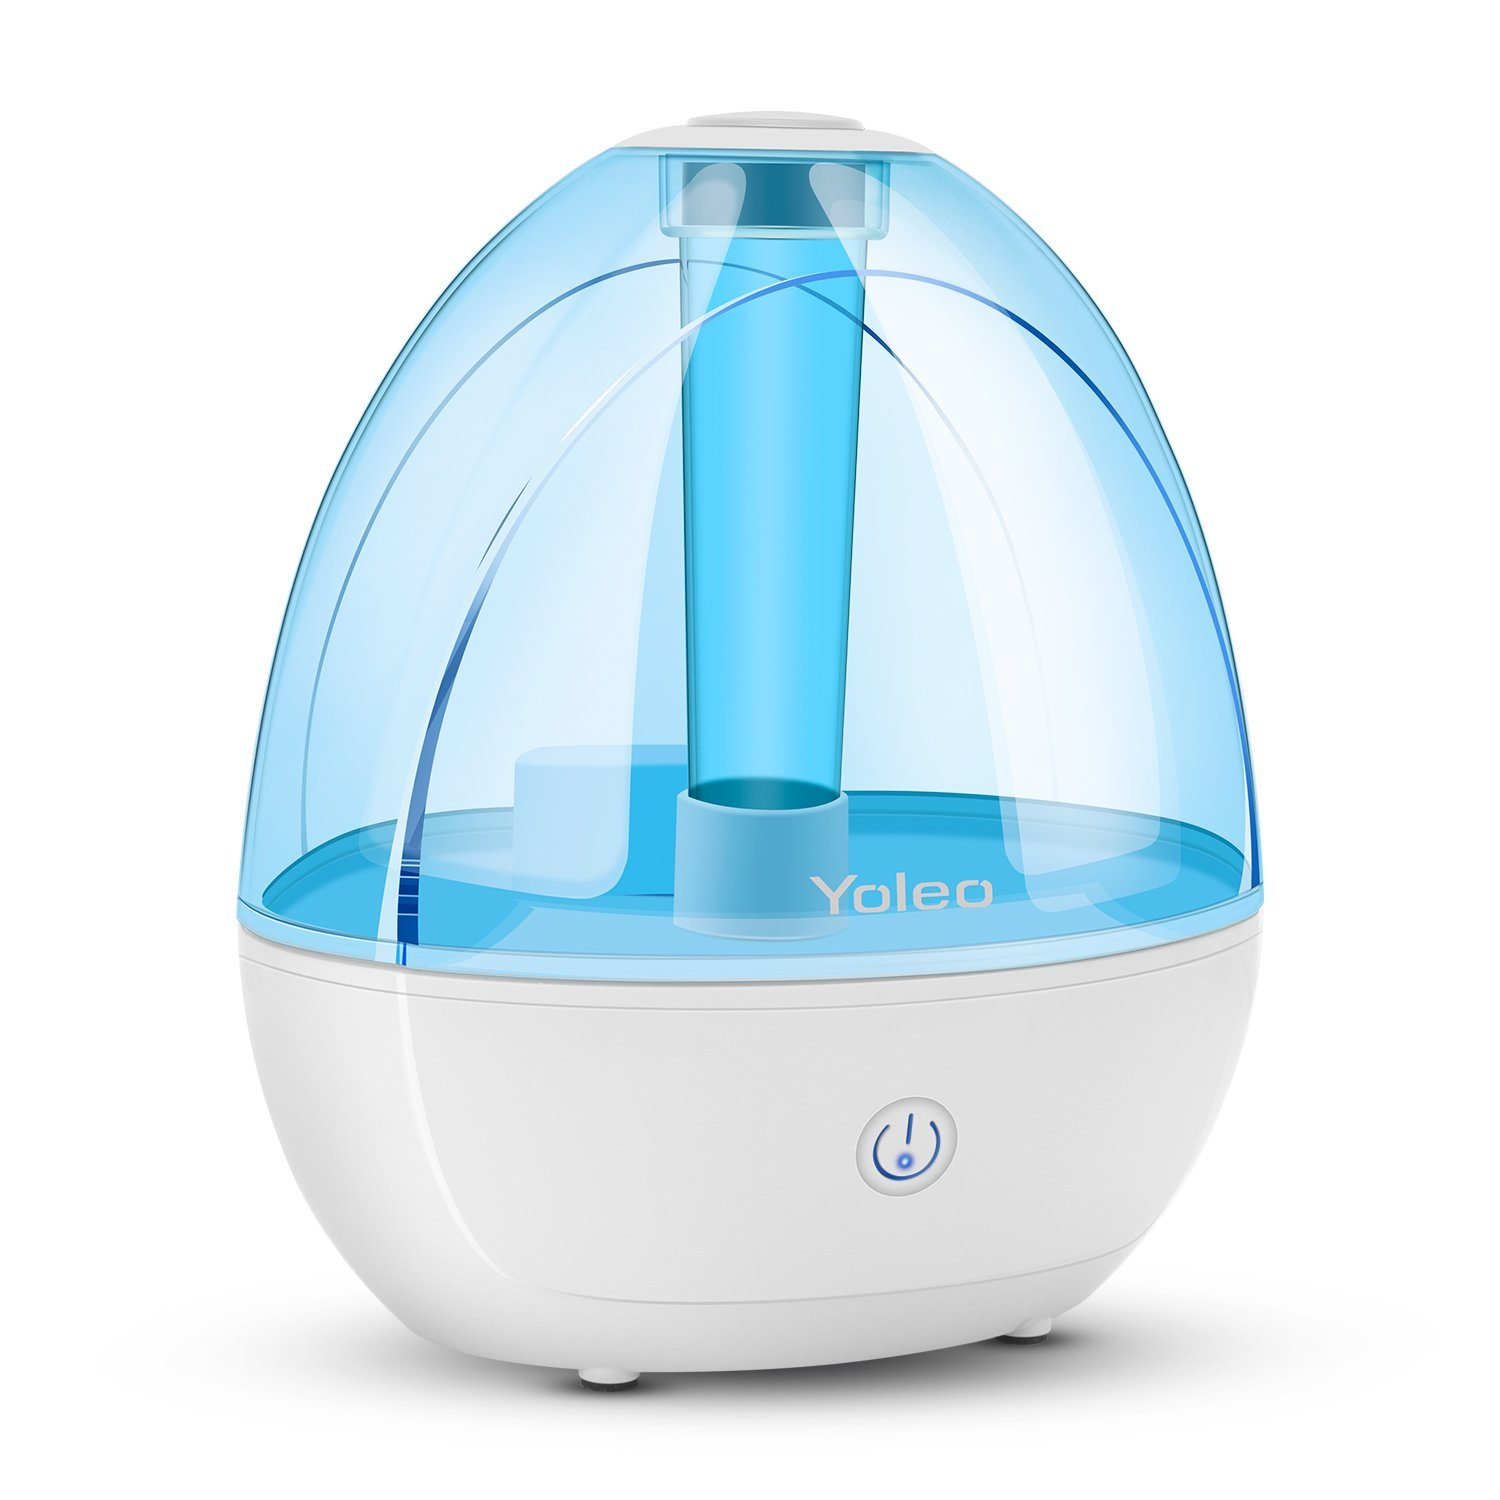 Cooler Portable Ultrasonic Cool Mist Air Humidifier Automatic Light Home Office